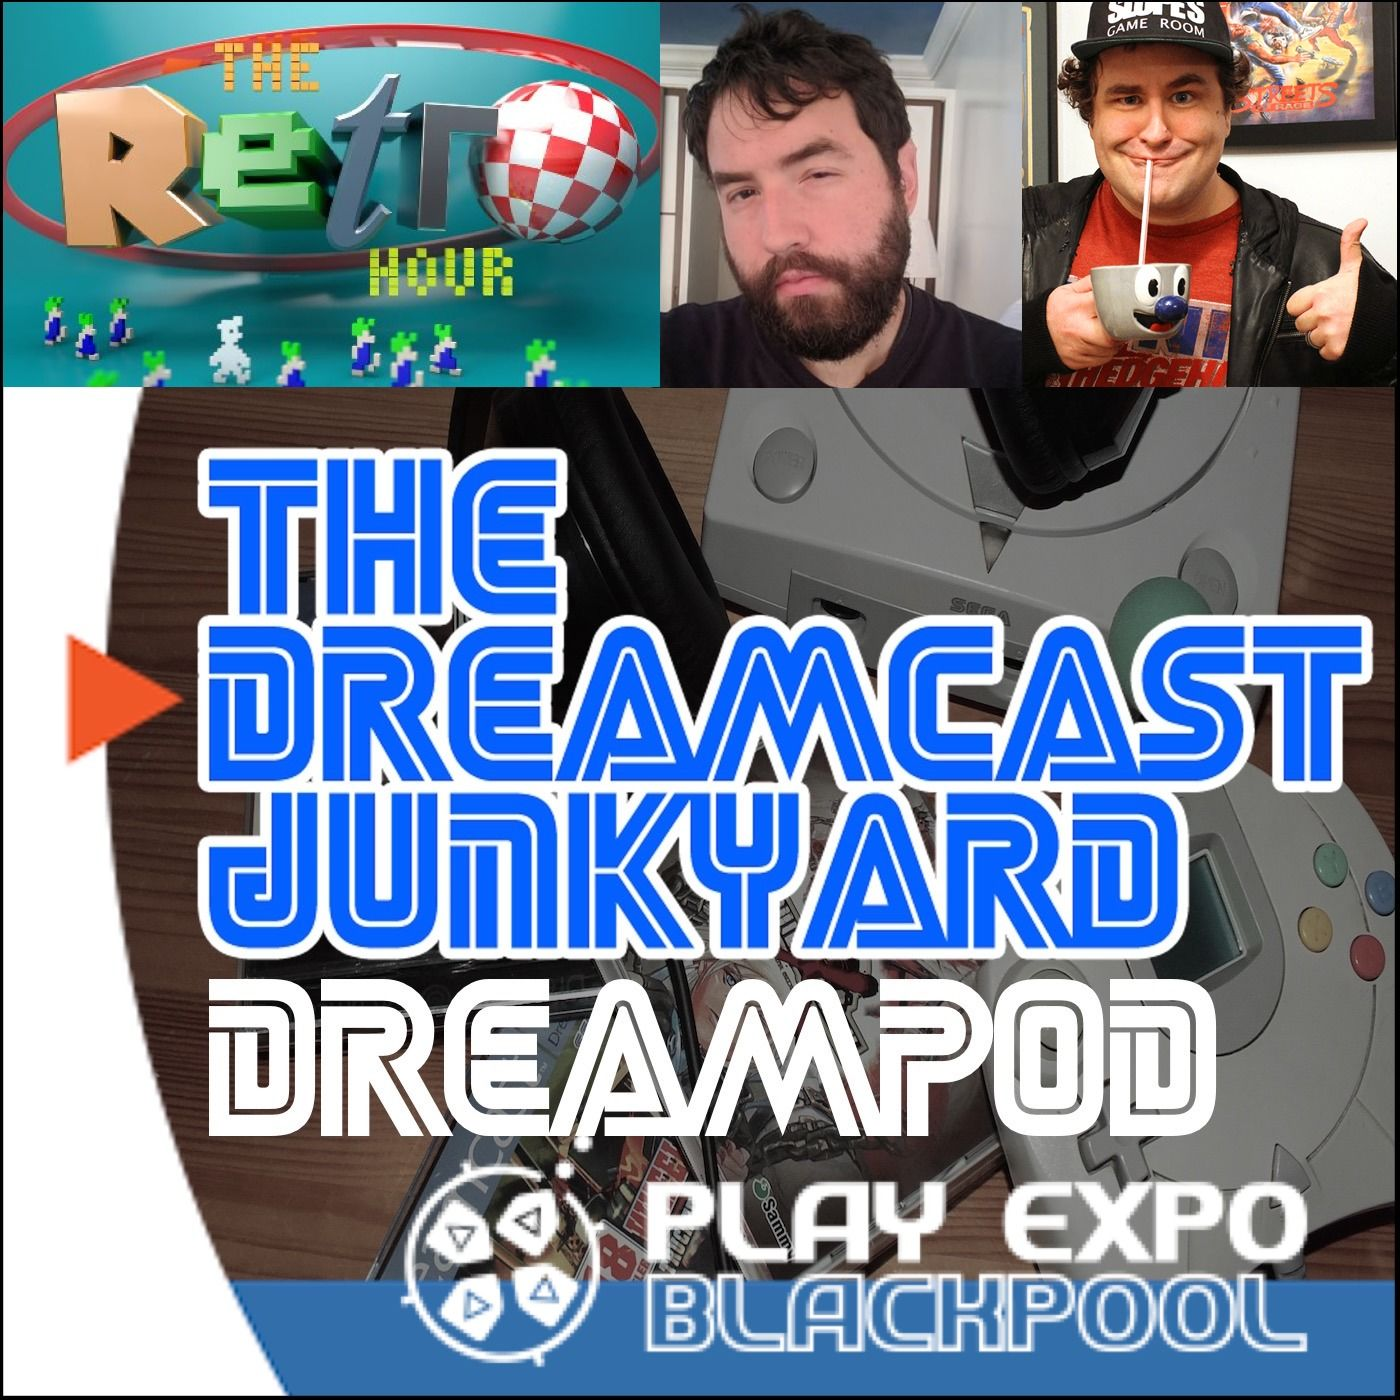 The Dreamcast Junkyard DreamPod - Episode 62 LIVE at PLAY Expo Blackpool with Adam Koralik and DJ Slope, hosted by The Retro Hour